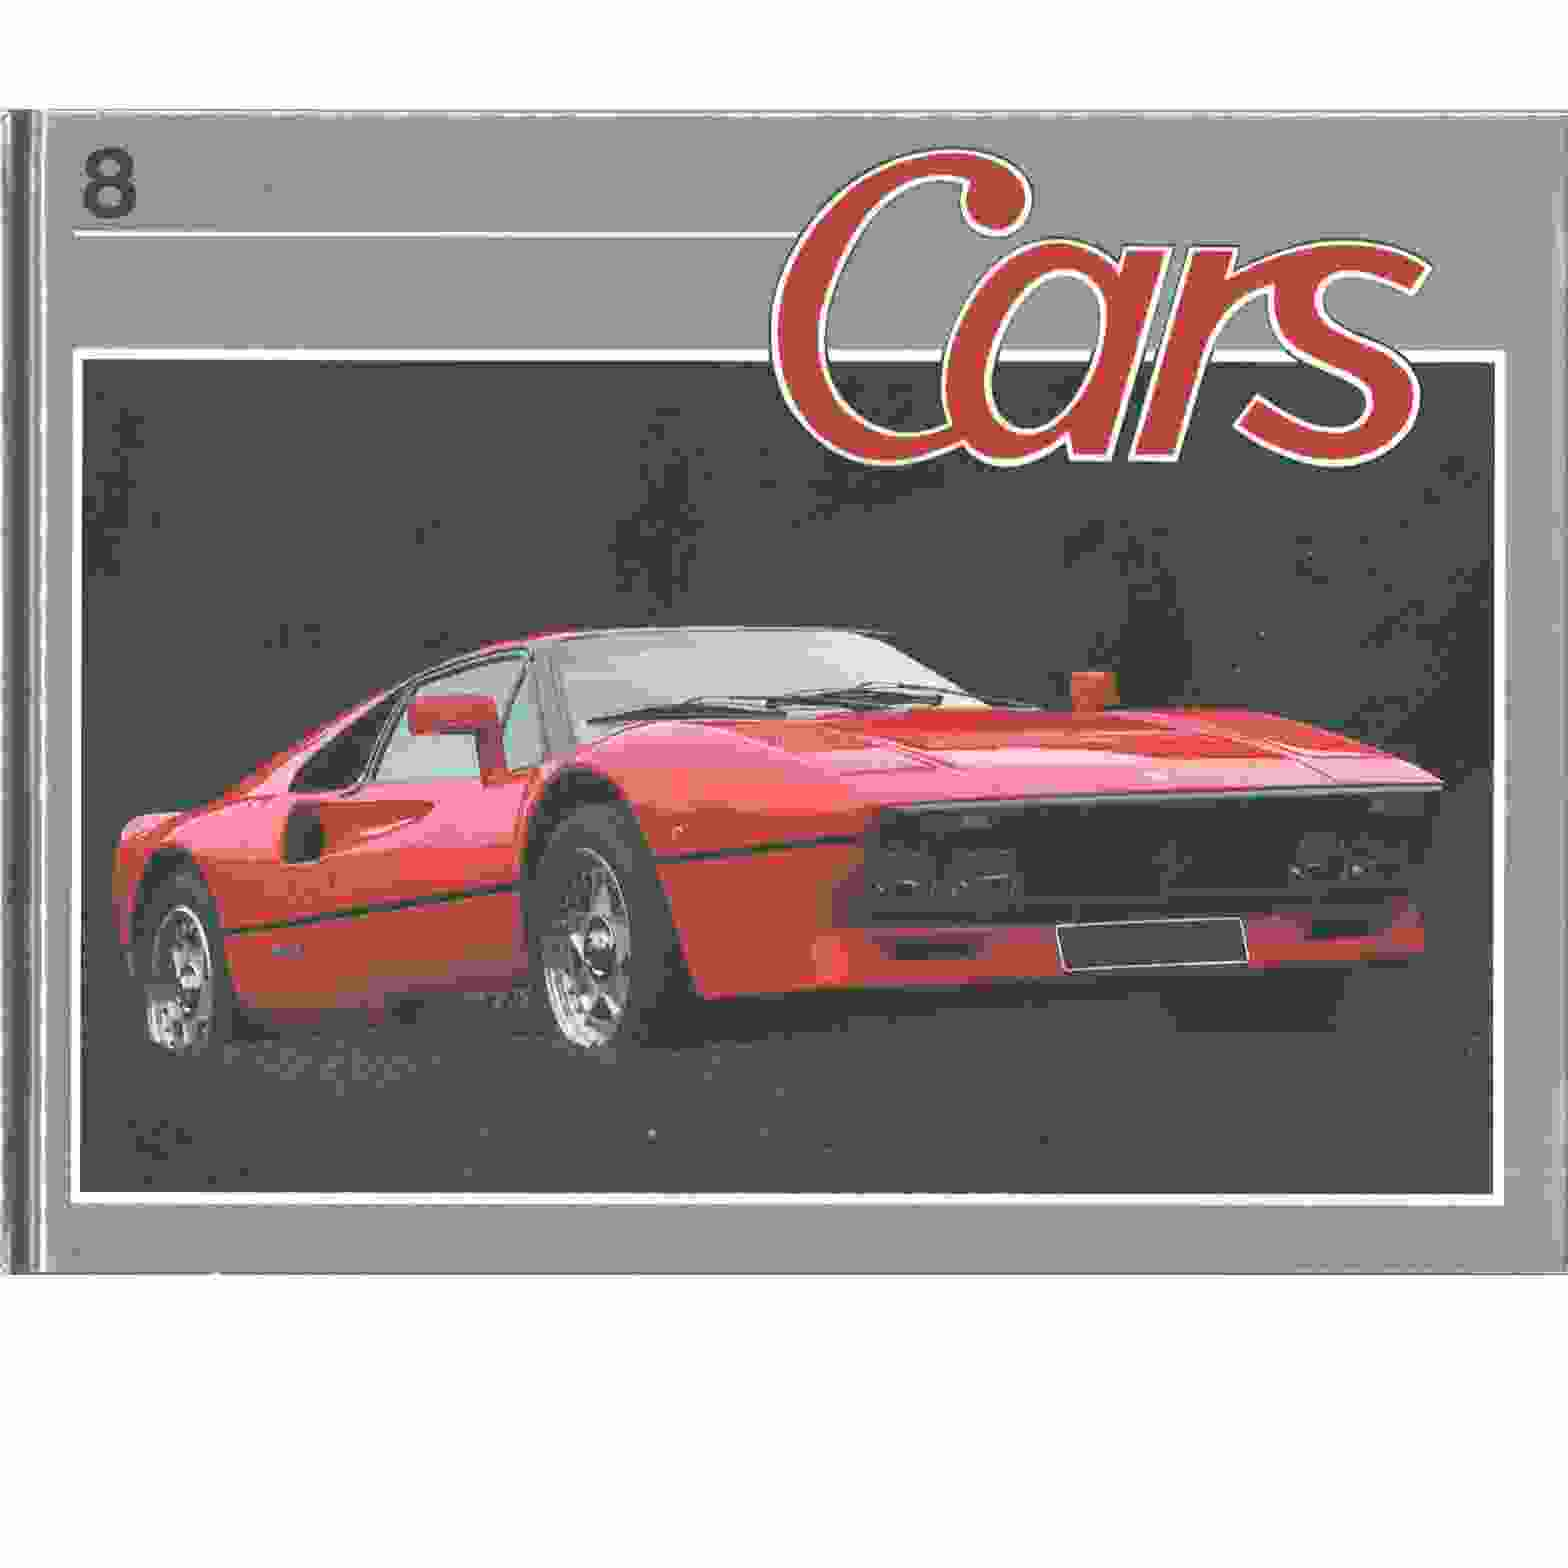 Cars. 8 - Red. Borgenstam, Curt